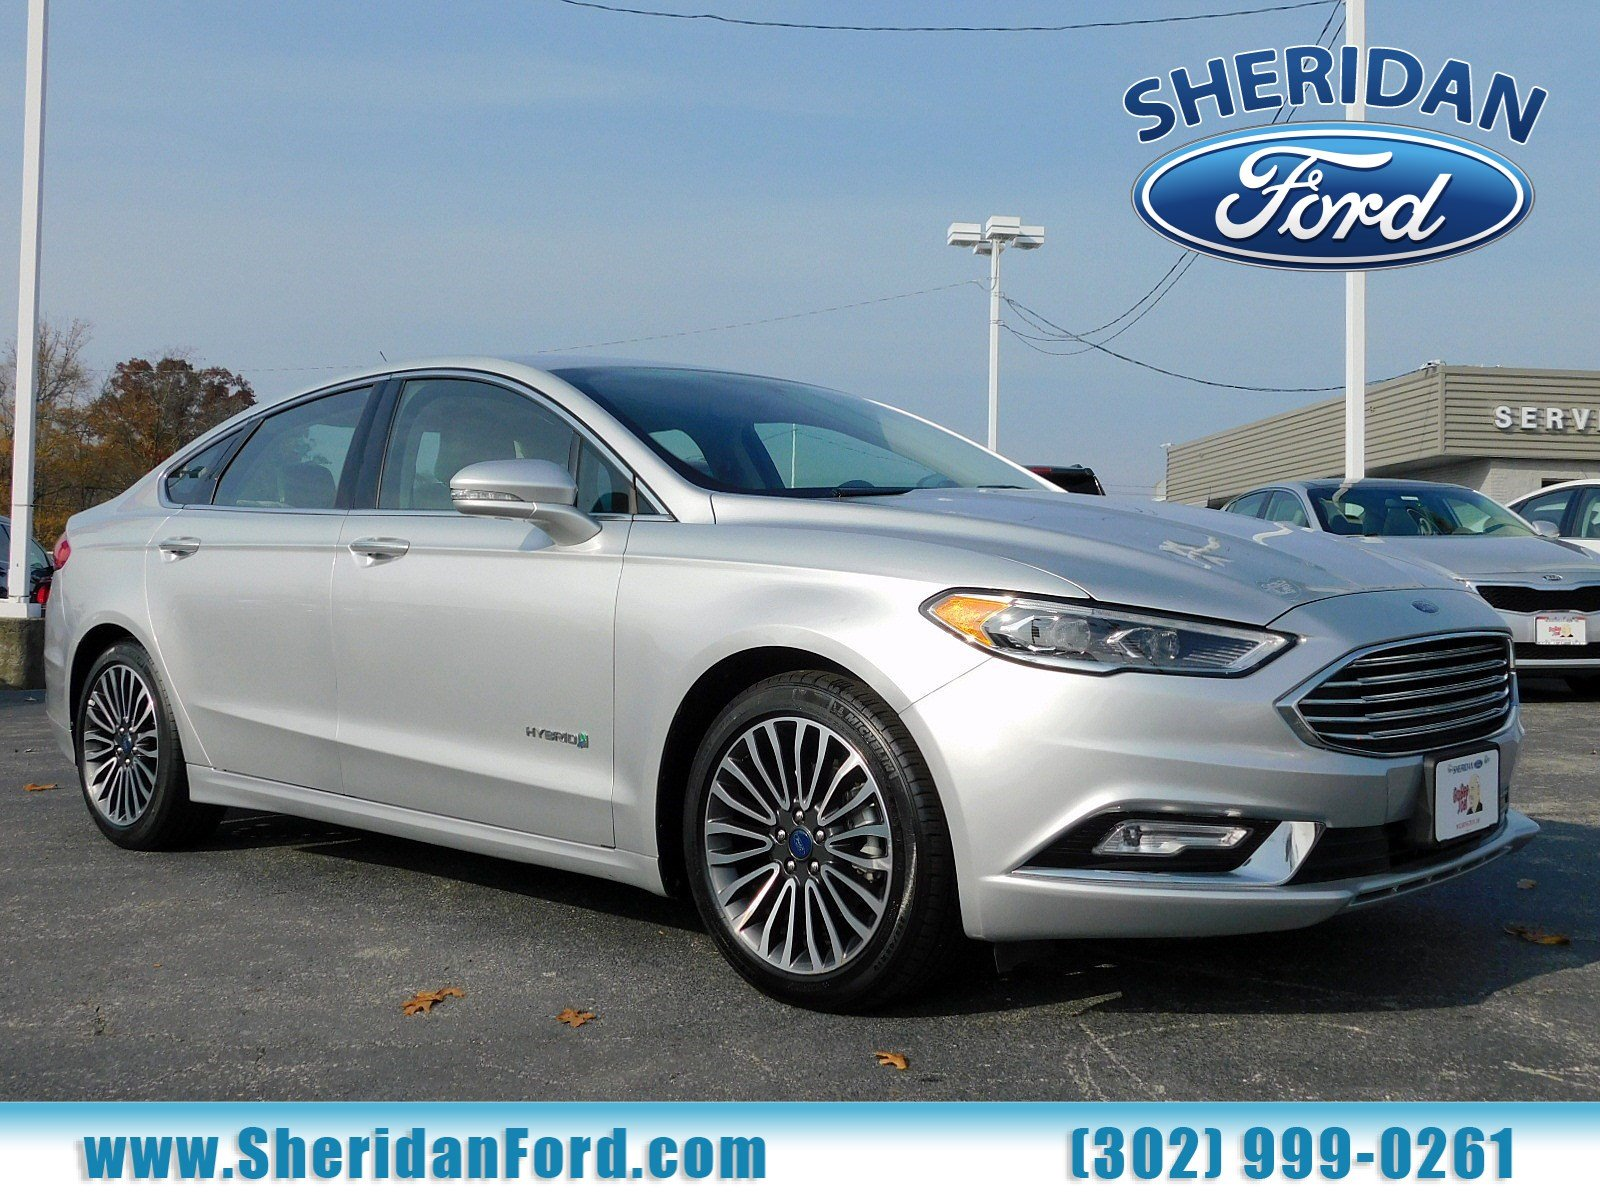 Certified Pre Owned 2017 Ford Fusion Hybrid Anium